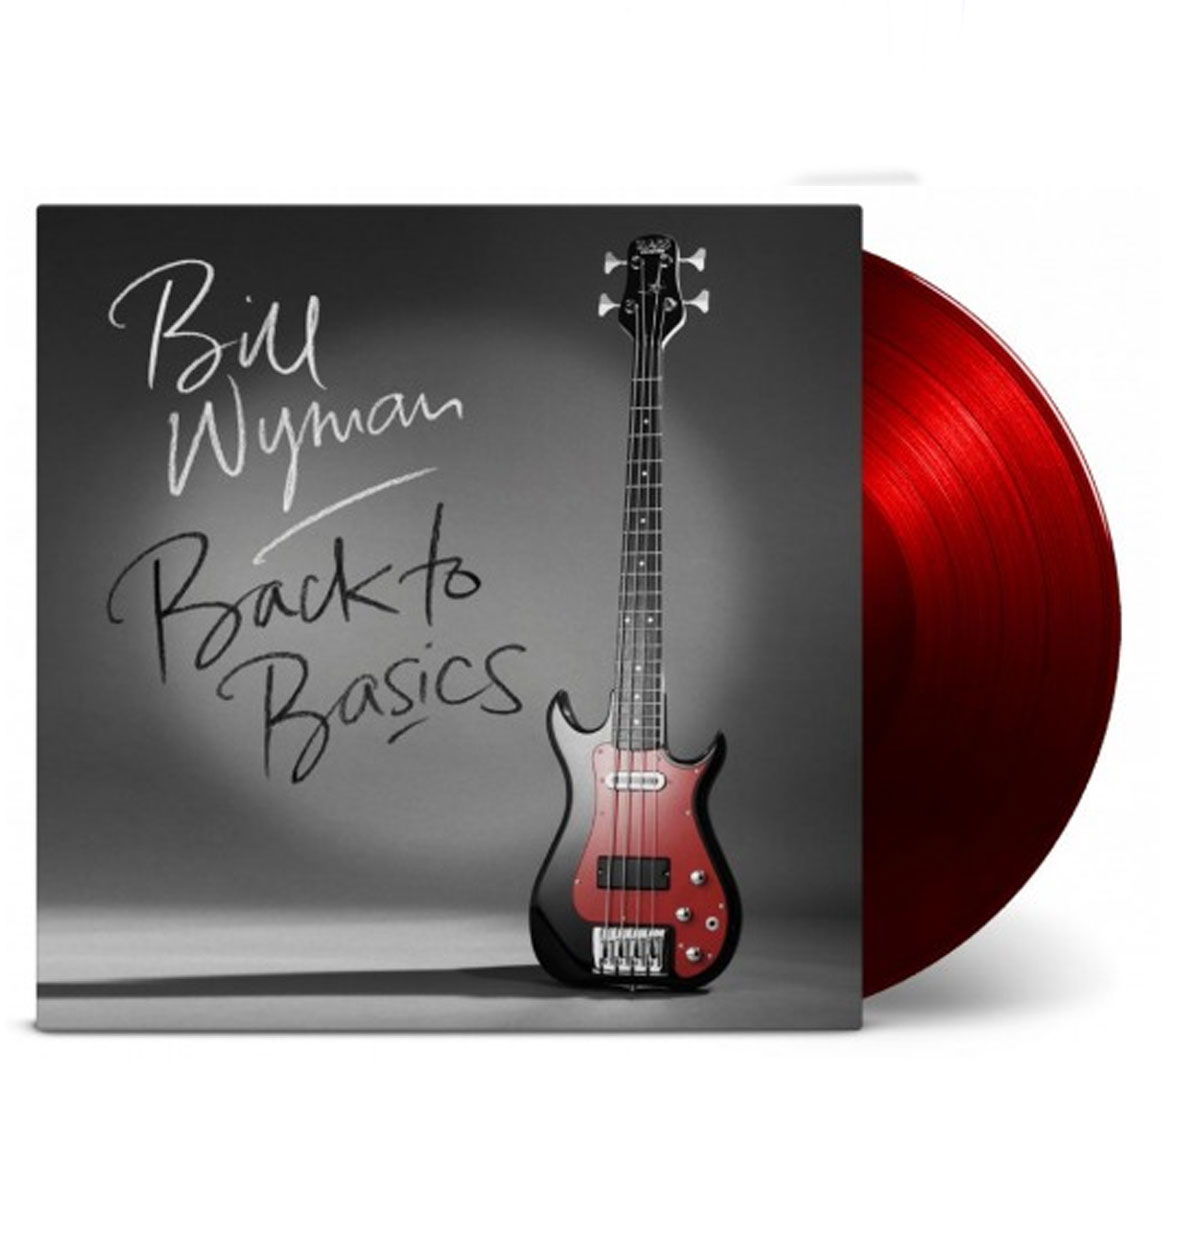 Bill Wyman - Back to Basics LP - LTD Red Vinyl